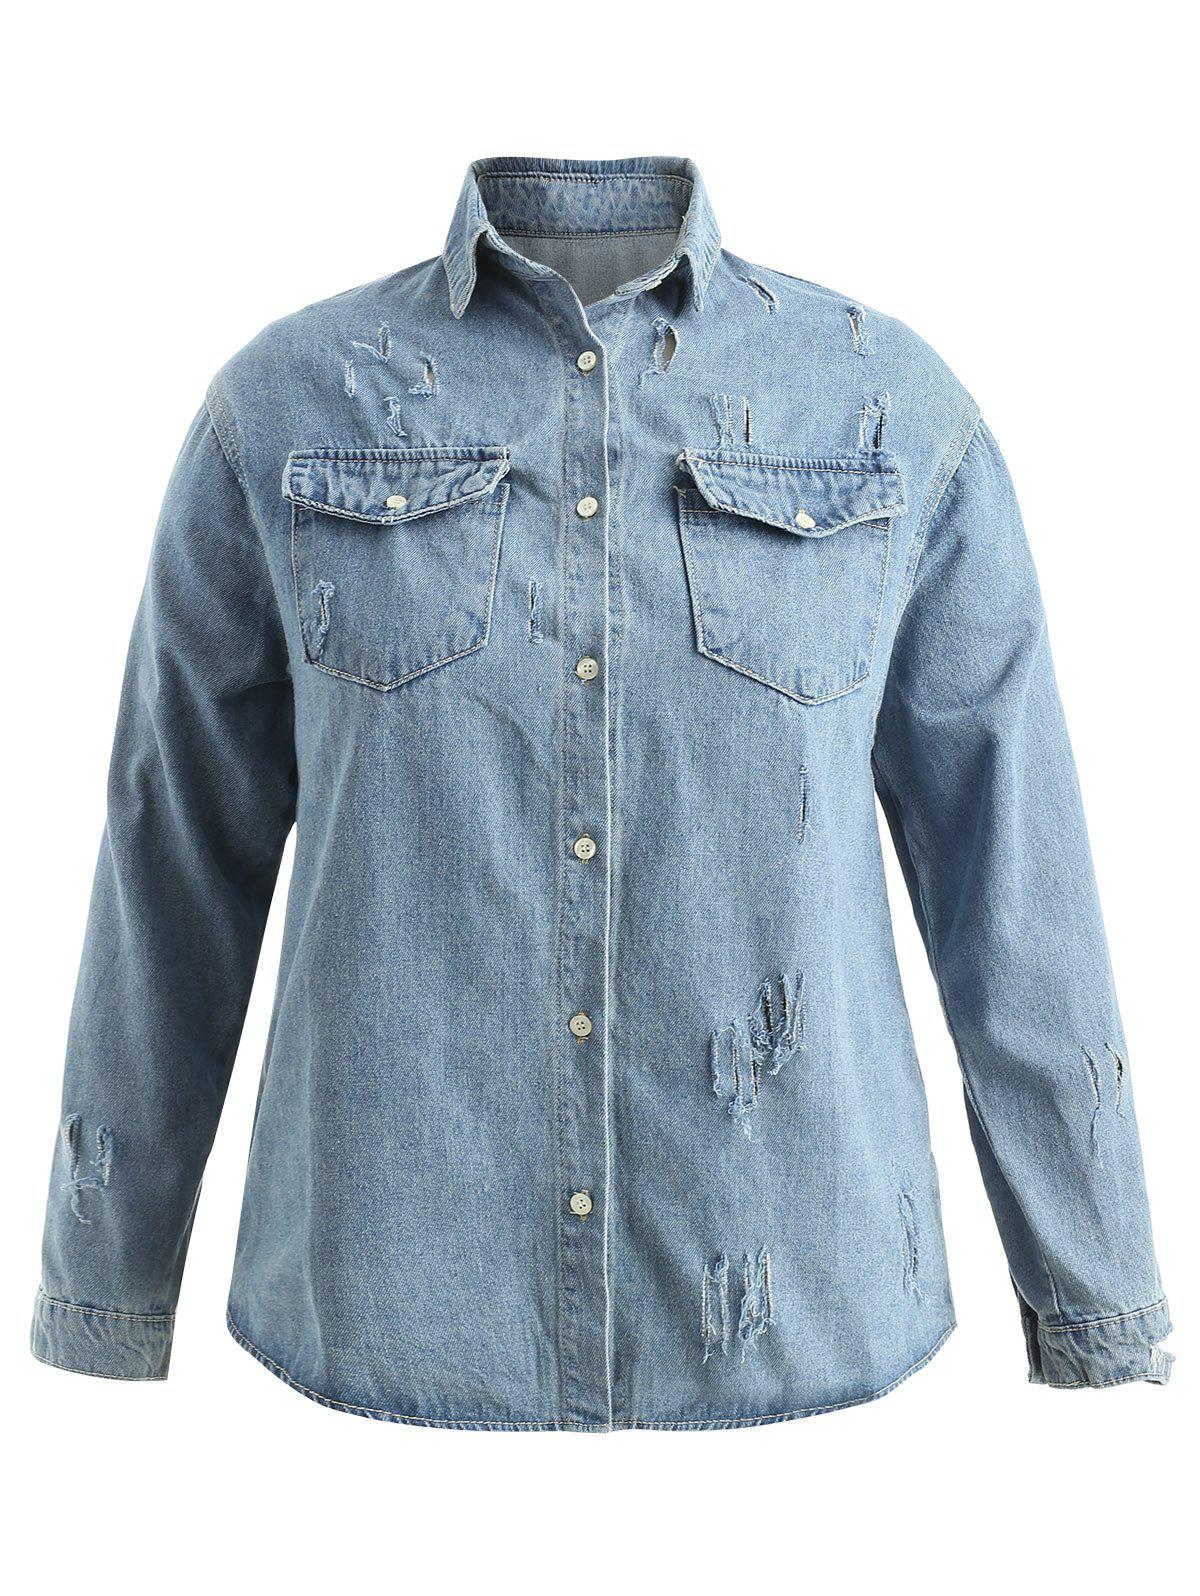 Buy Plus Size Button Up Jean Shirt Jacket